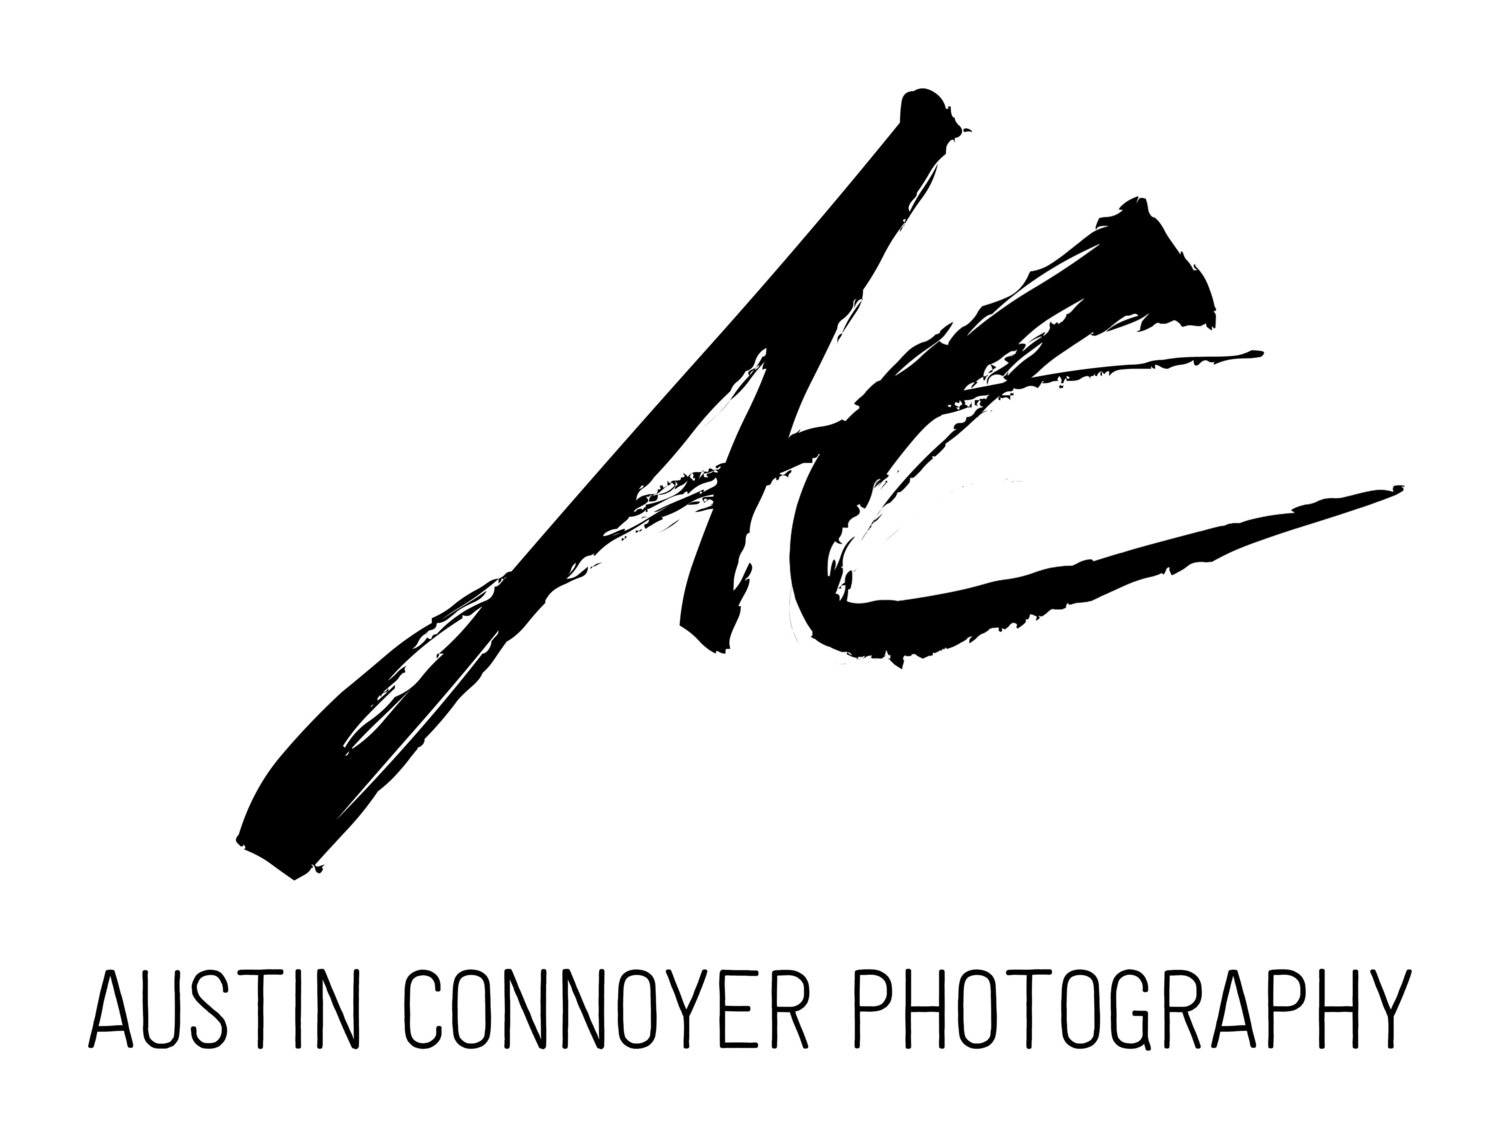 Austin Connoyer Photography